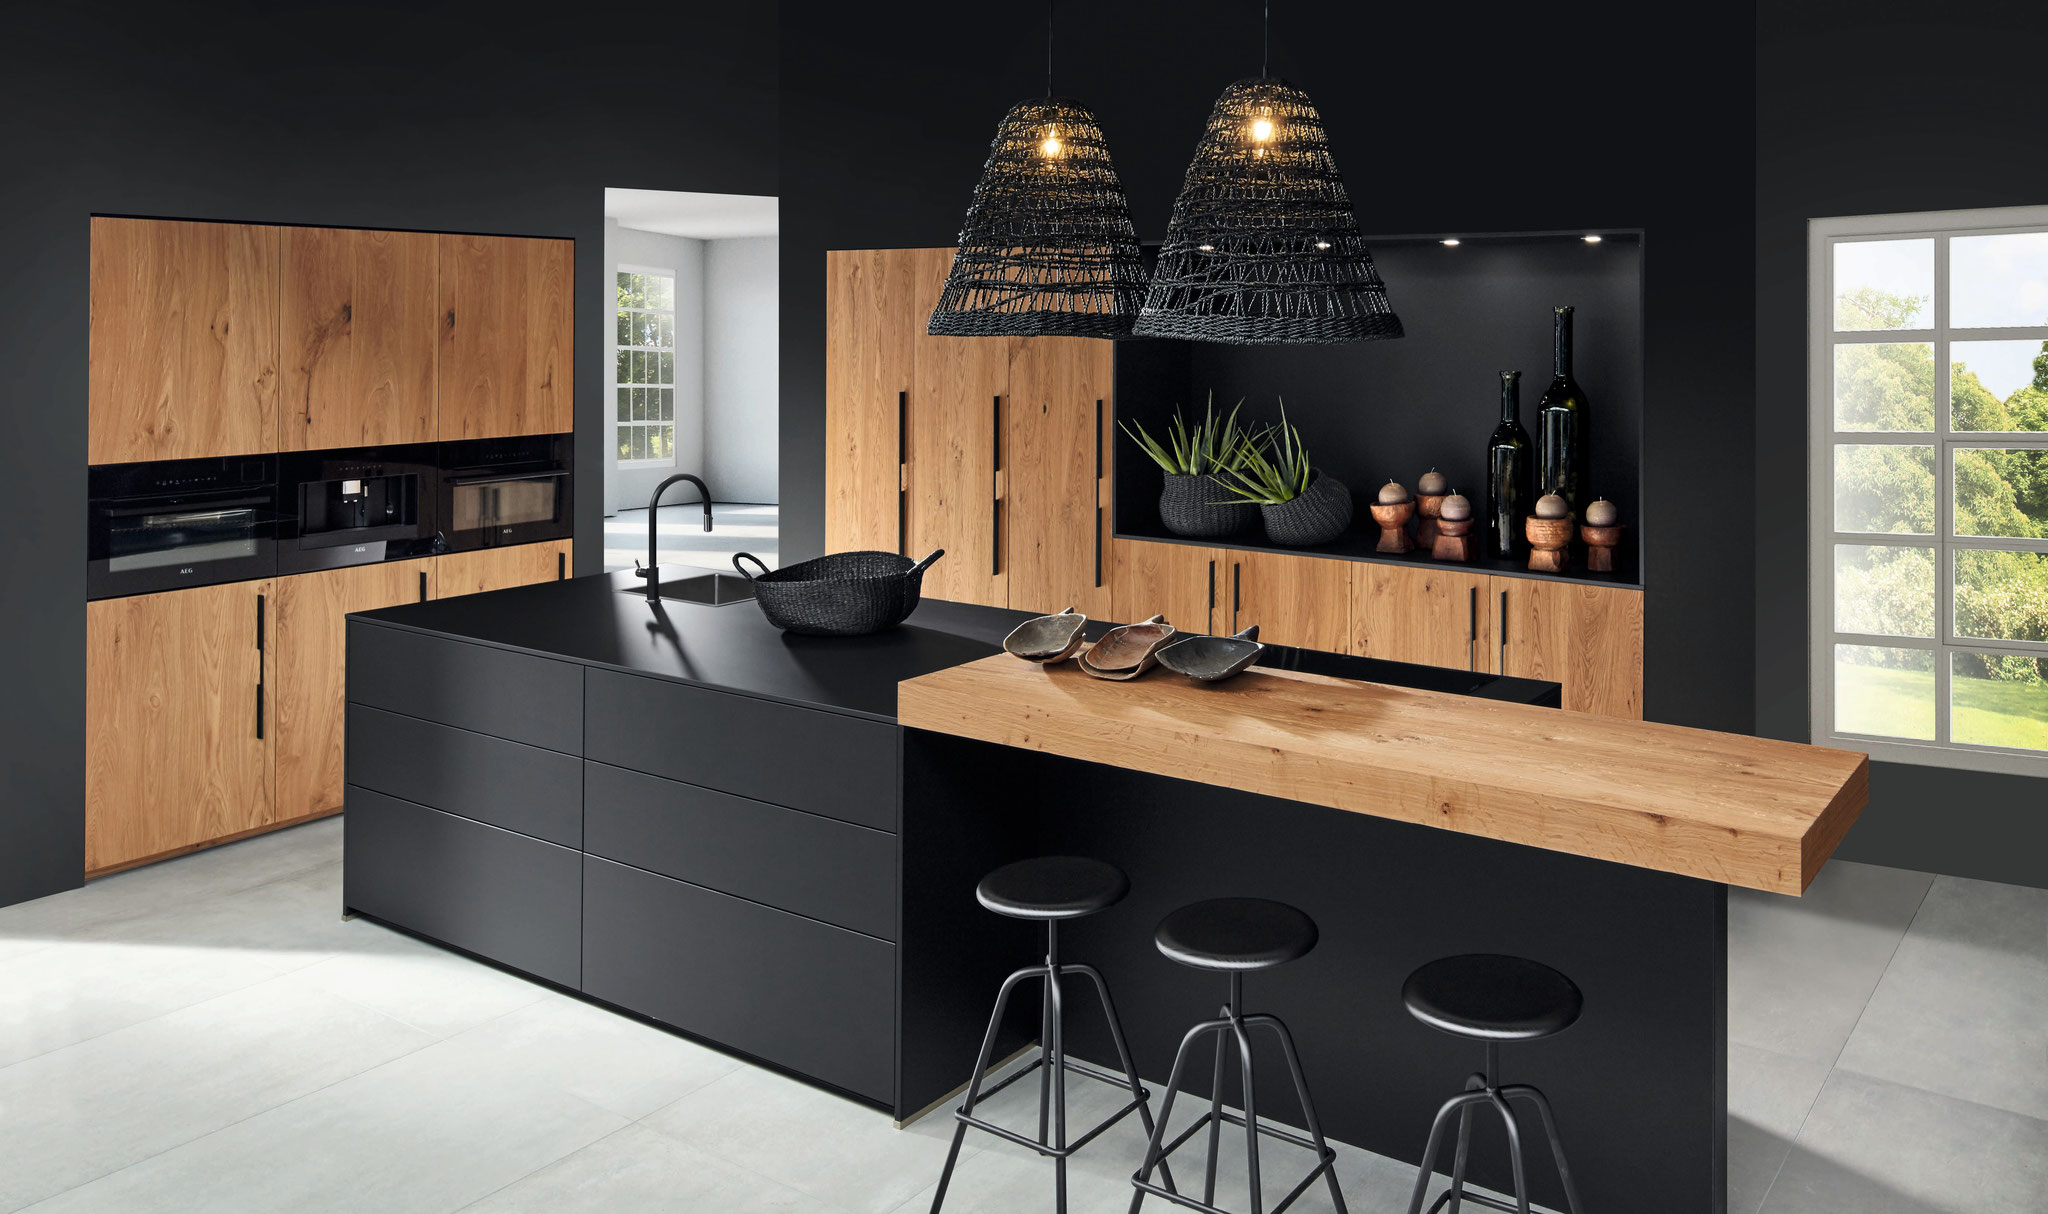 cuisine design haut de gamme meubles allemand et fran ais sur mesure cuisine interieur design. Black Bedroom Furniture Sets. Home Design Ideas